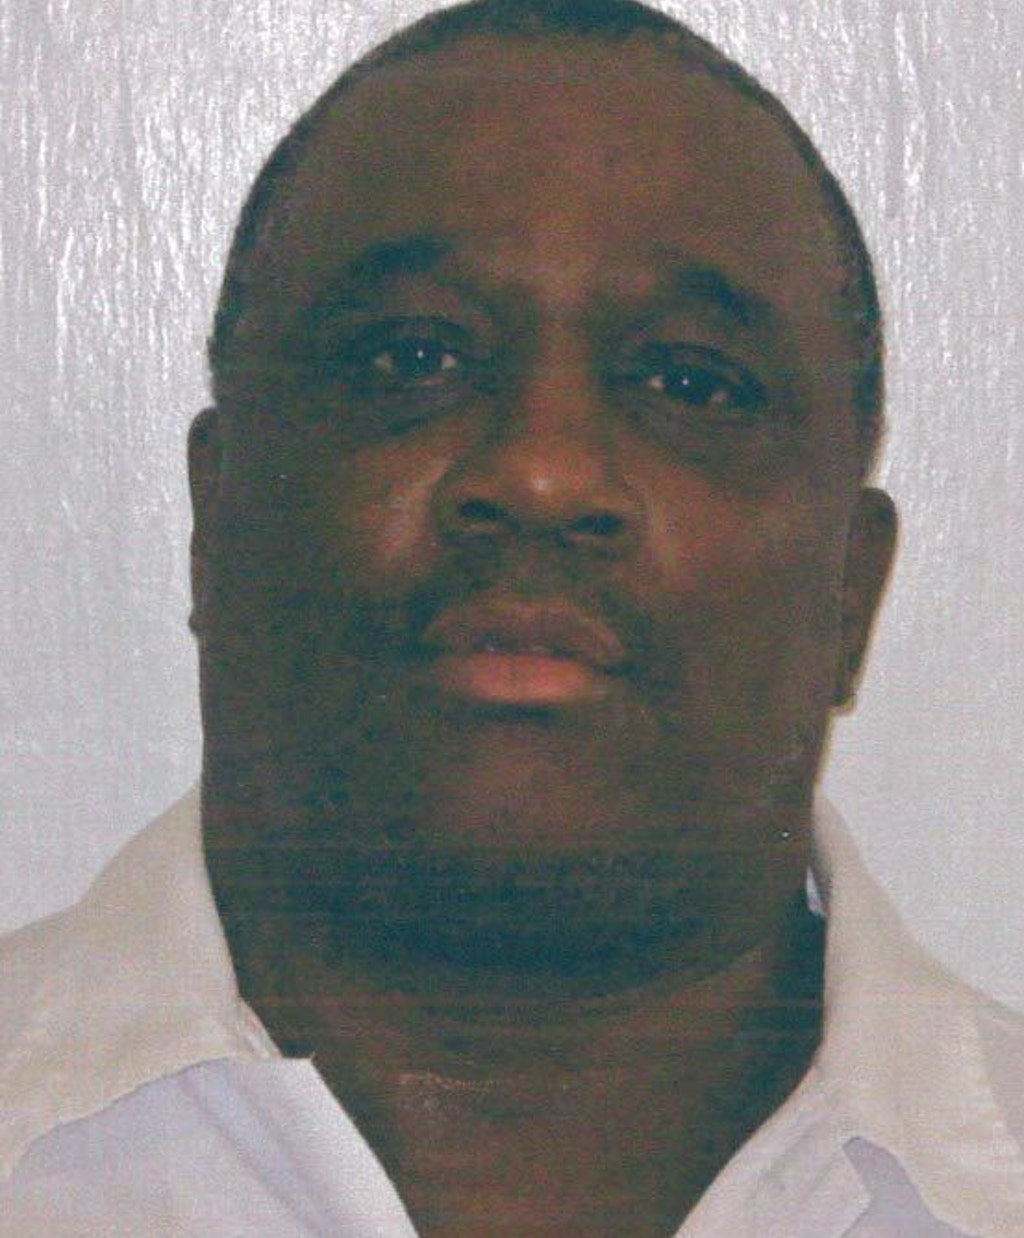 NEW PODCAST:  He May Be Innocent and Intellectually Disabled, But Rocky Myers Faces Execution in Alabama